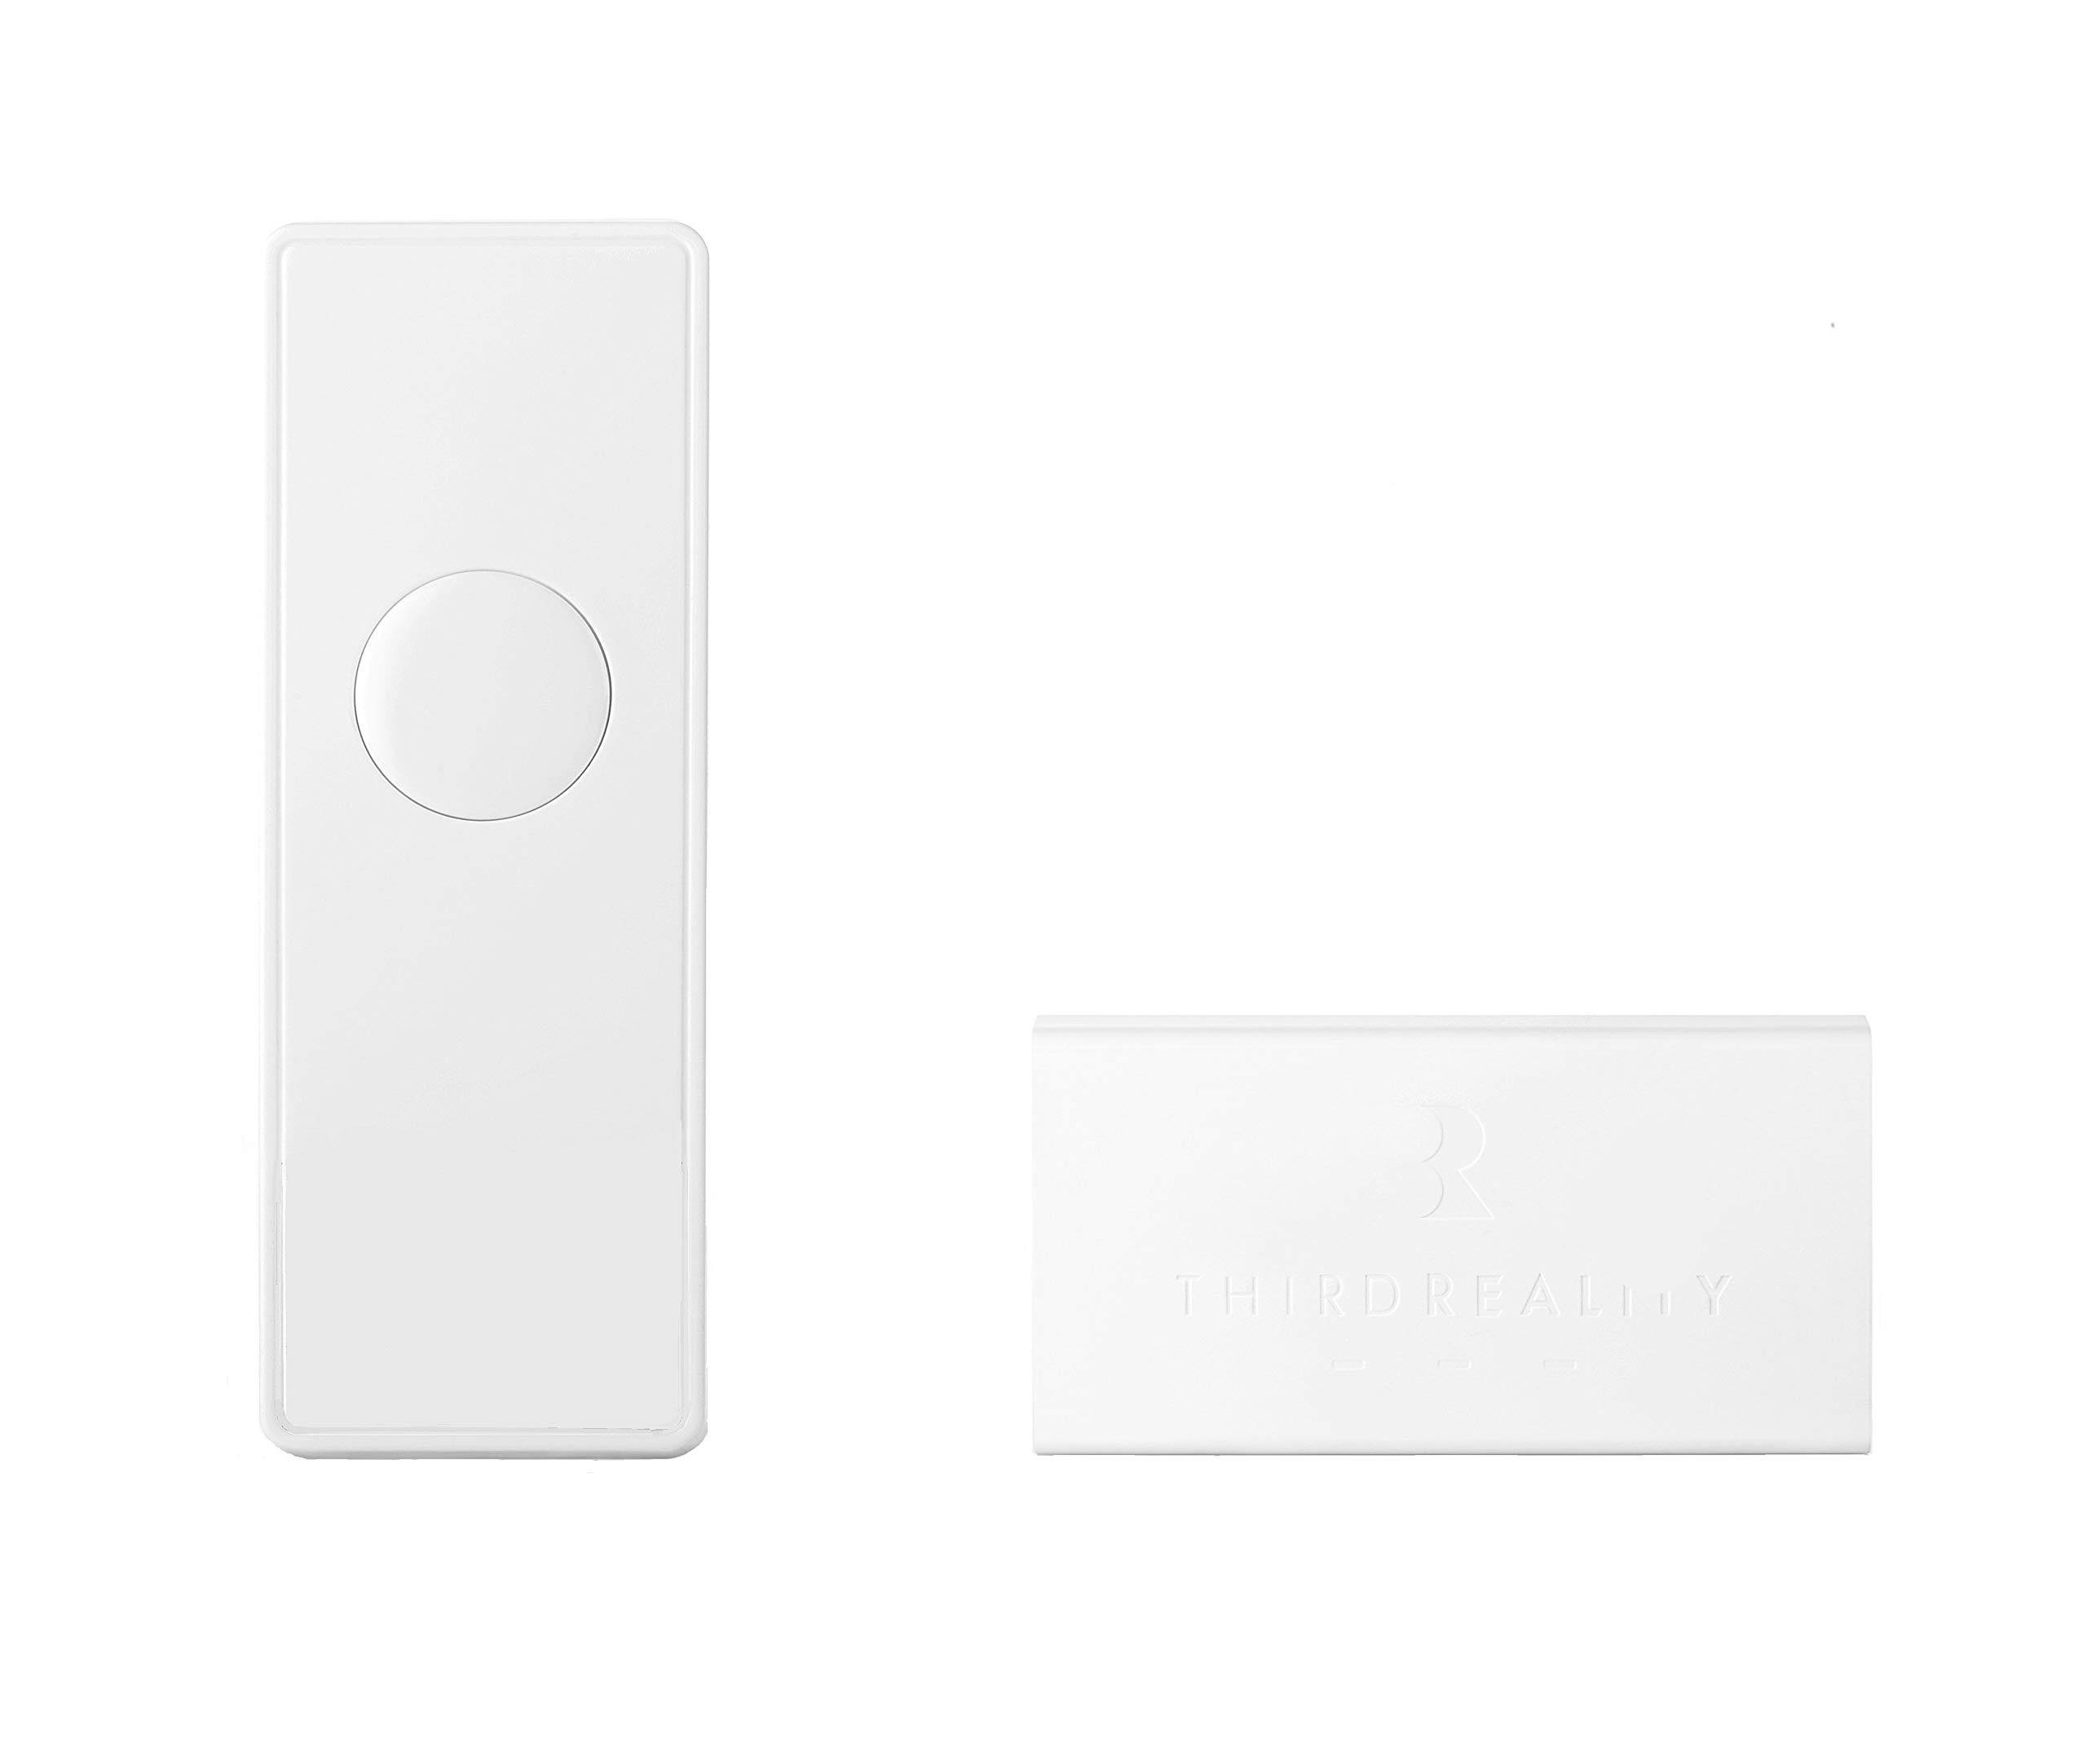 Mitzvah Family 1007 Magnetic Switch and Outlet Cover for Toggle Switches 6 Piece